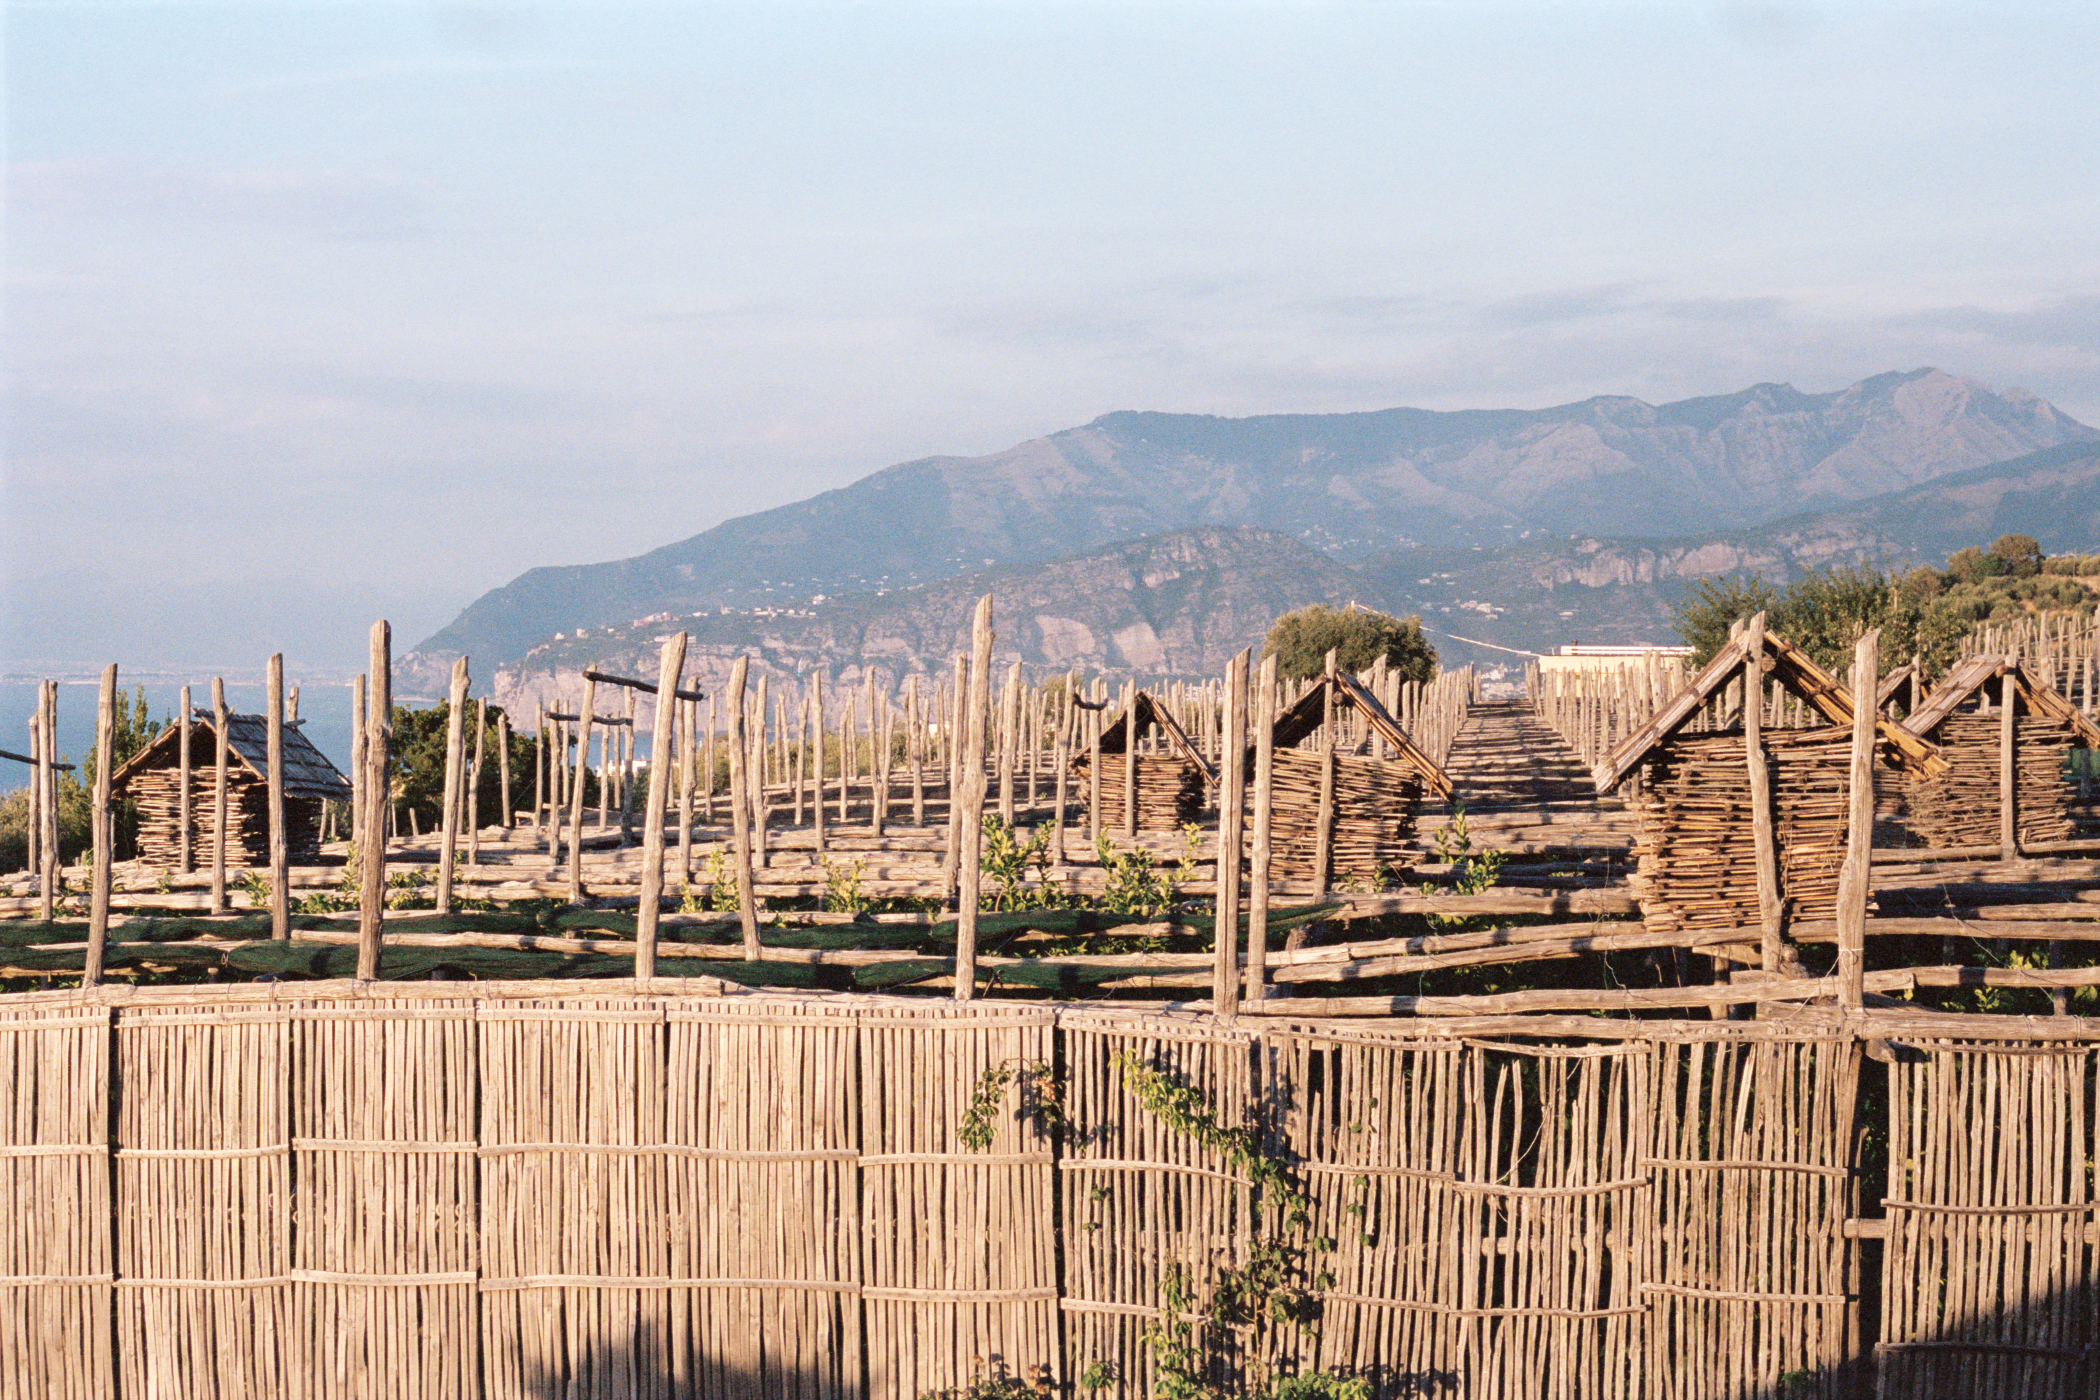 """The Last Pagliarelle Makers - Lemon gardens in Sorrento and Massa Lubrense are protected by pagliarelle which are made of chestnut wood and bamboo. In the winter each pagliarella is laid down like a roof over the garden and in the summer the garden is uncovered, stacking the pagliarelle into """"cassette"""" which look like little houses. Giovanni and his father are the last makers of pagliarelle and today only a few farms still use this traditional method, while most farms now use synthetic nets, a much cheaper alternative."""